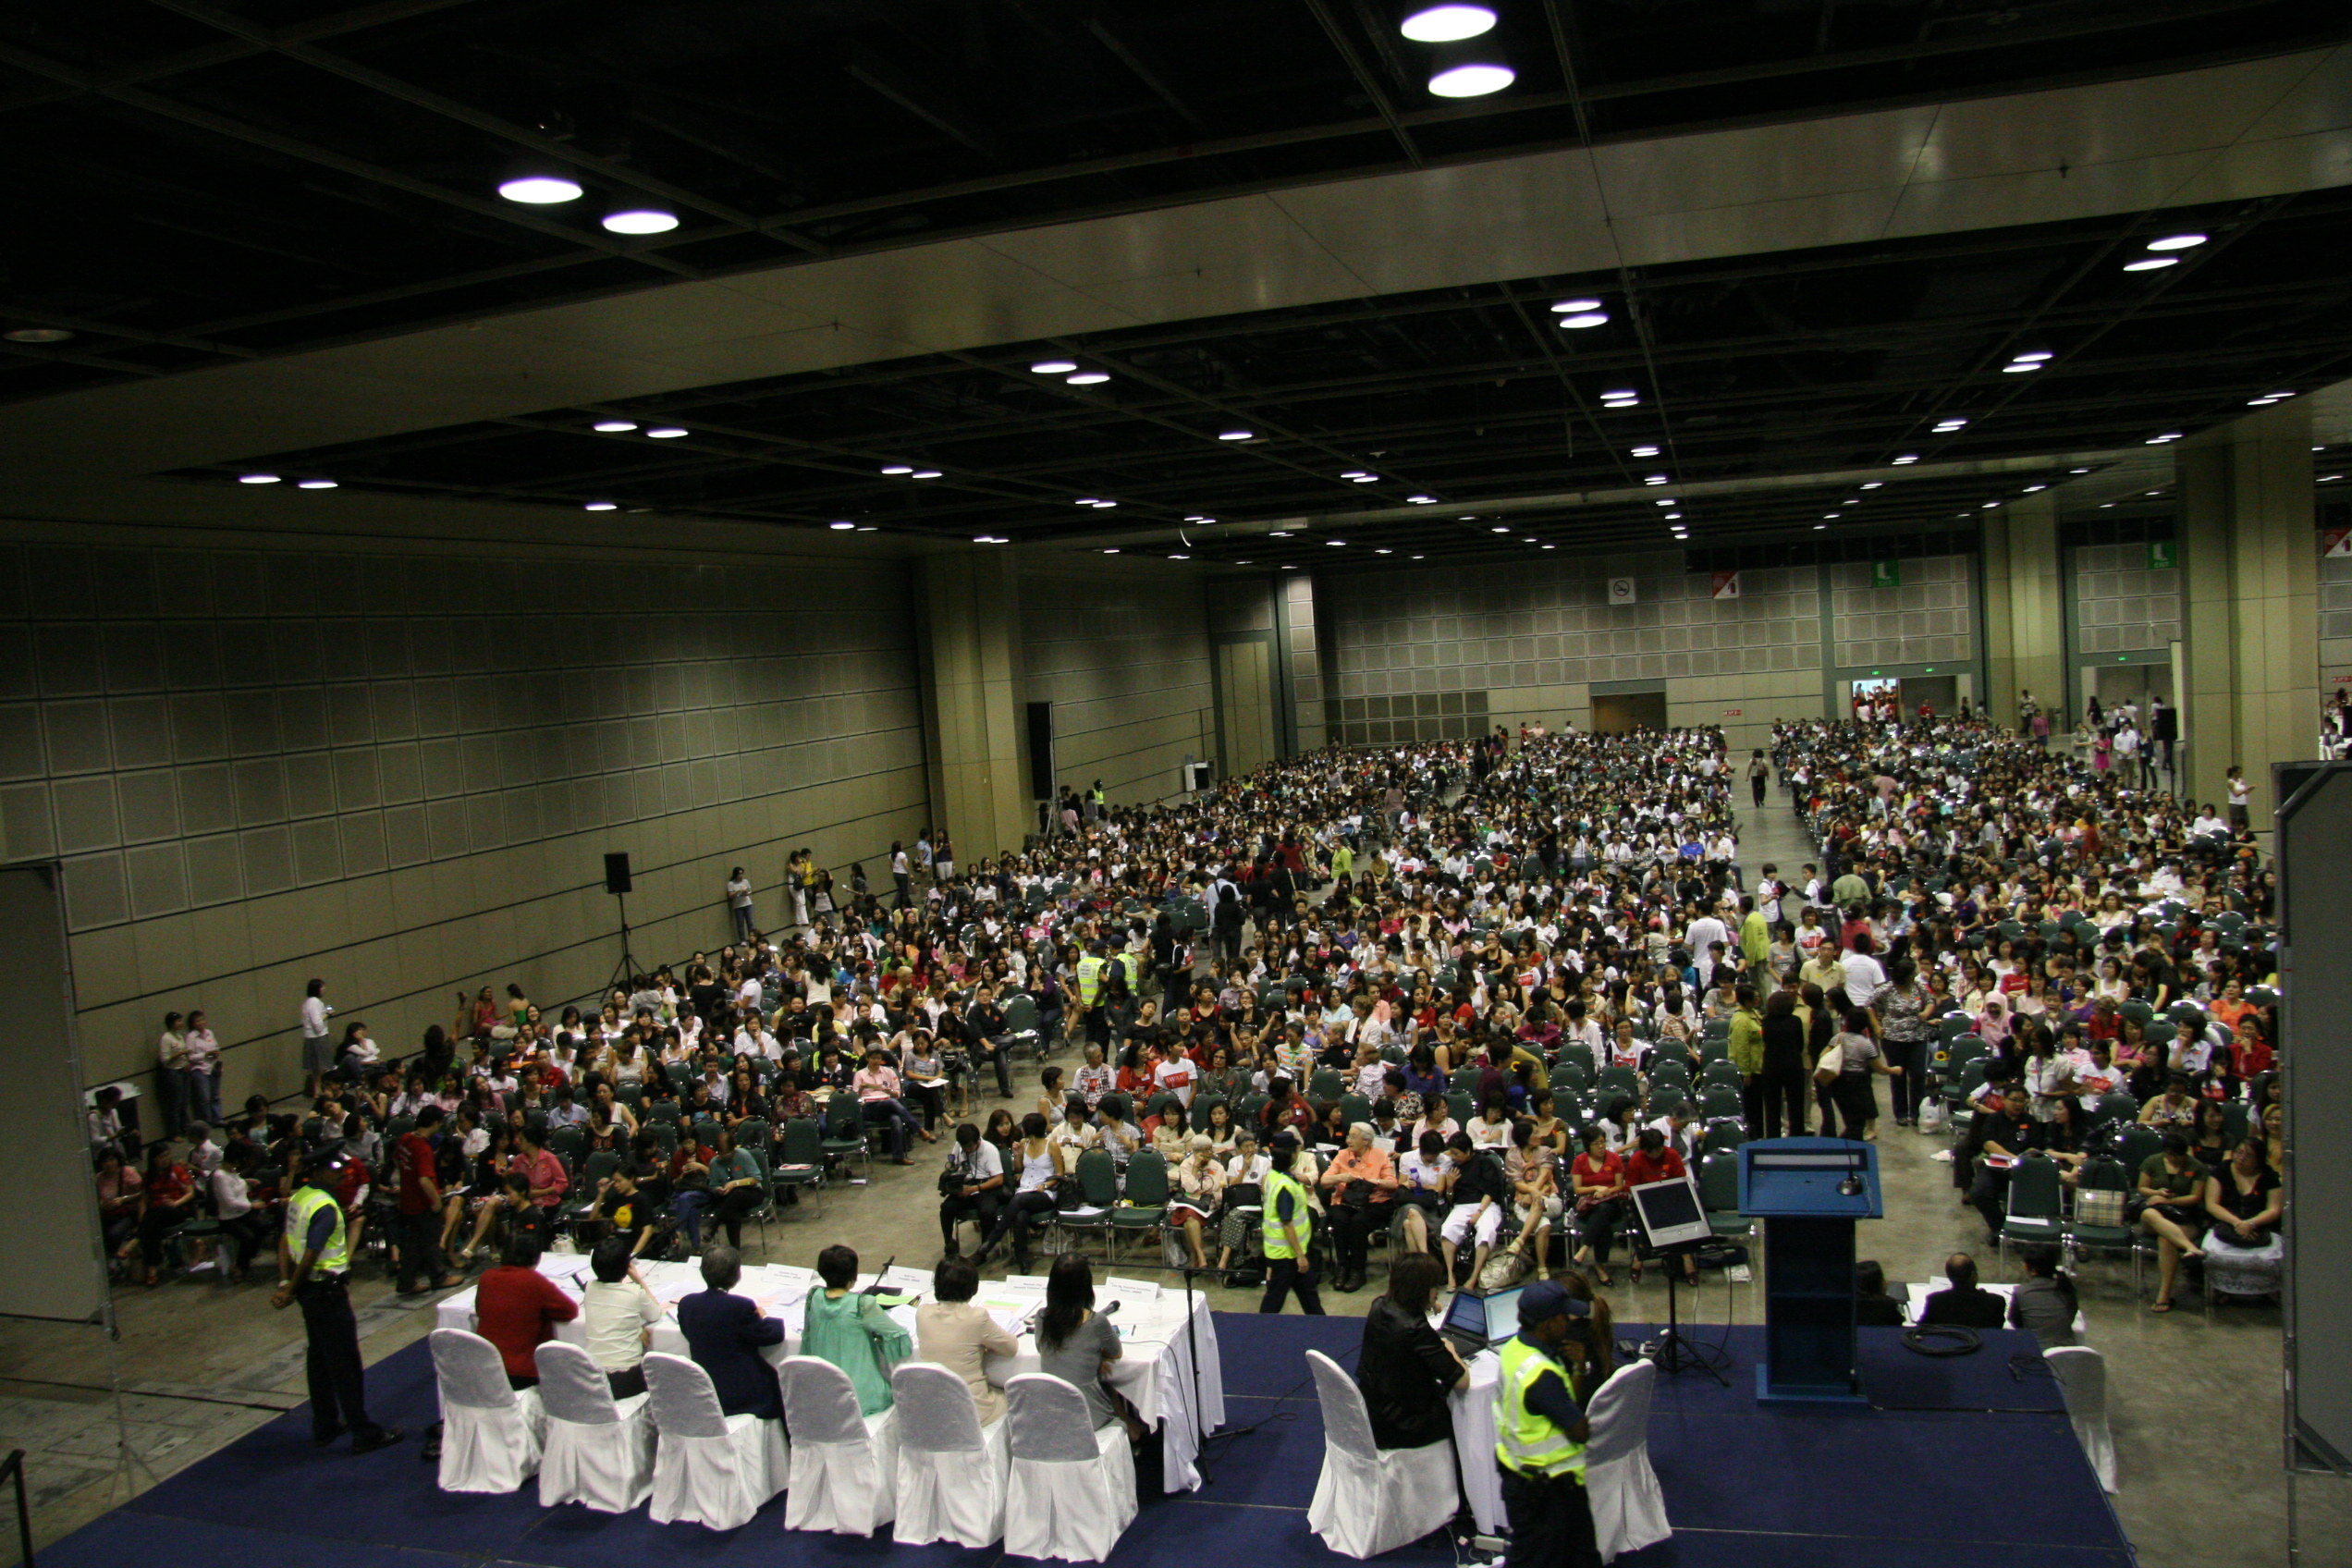 On the left is someone holding four cards in their hand. The text on the cards are in Thai and English. The top card reads 'Cocaine'. On the right, a group of people are looking through a large pile of cards that have been spread out on the floor.